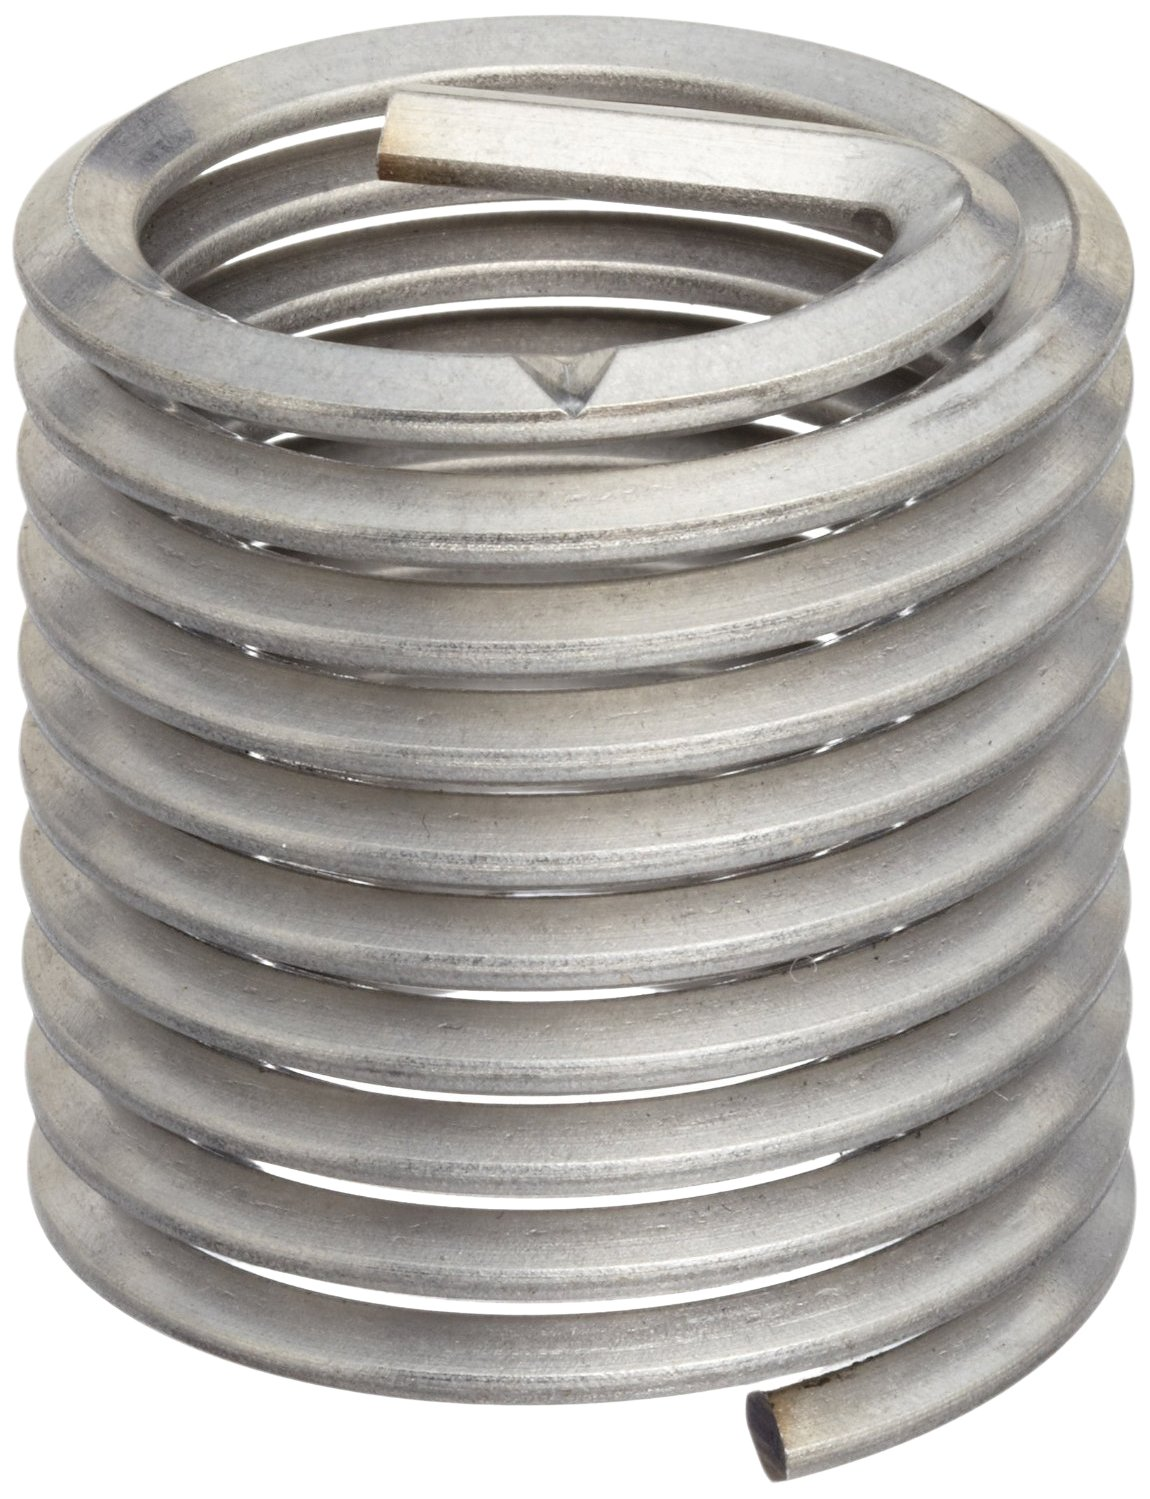 PowerCoil 3523-12.00X1.0DP M12 x 1.25 x 1.0D Wire Thread Inserts 10 Pack